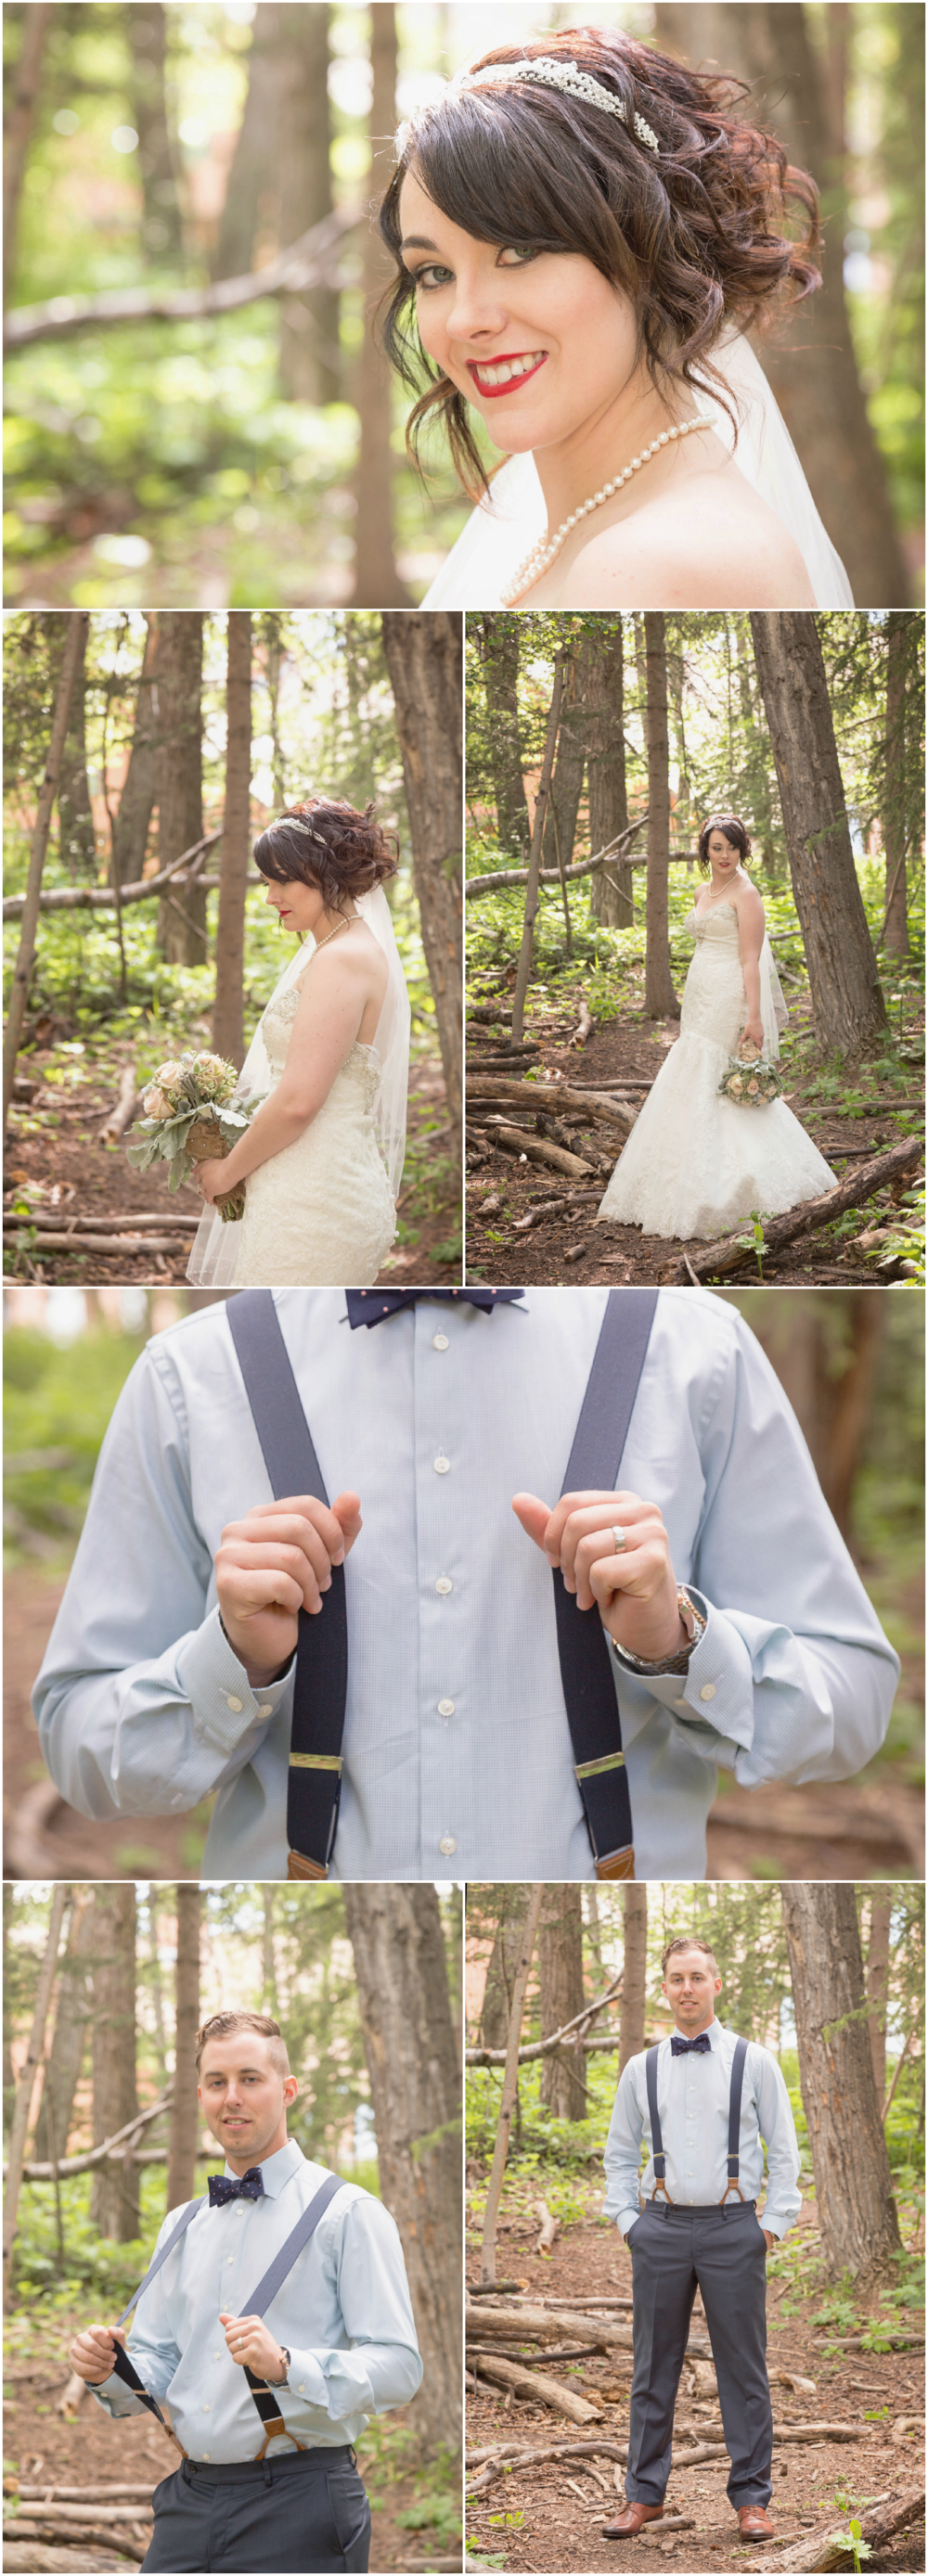 elkwater_wedding_photography_25.png